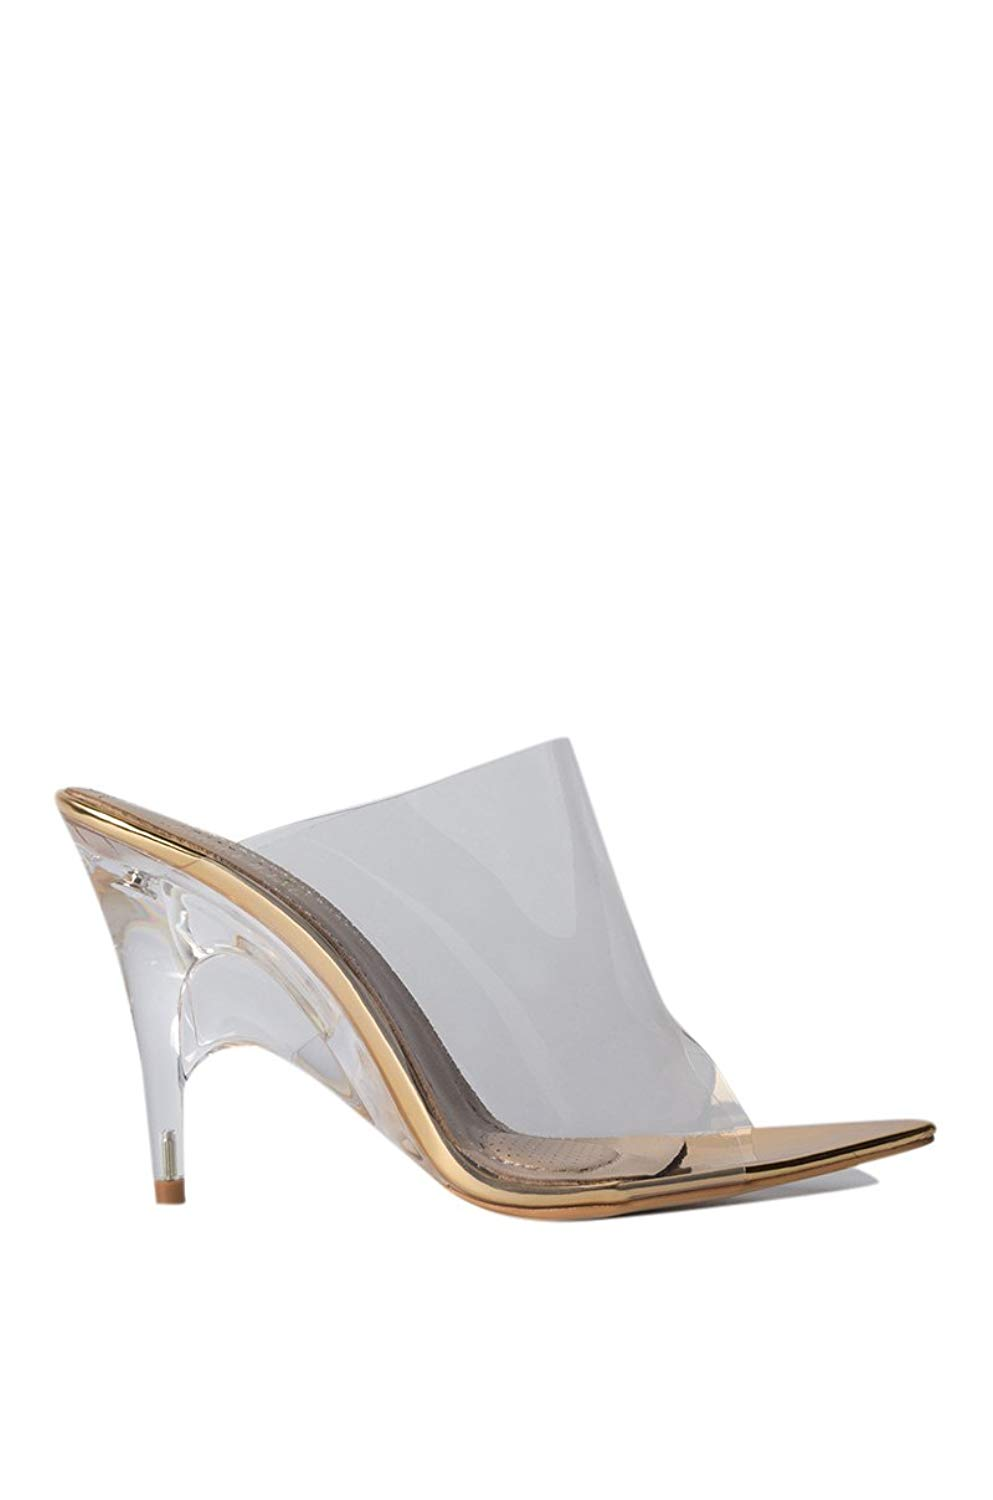 eb24ca58c5b4 Get Quotations · AZALEA WANG Clear PVC Gold Perspex Lucite Heel Pointy Toe  Mule Slip On High Heel Sexy